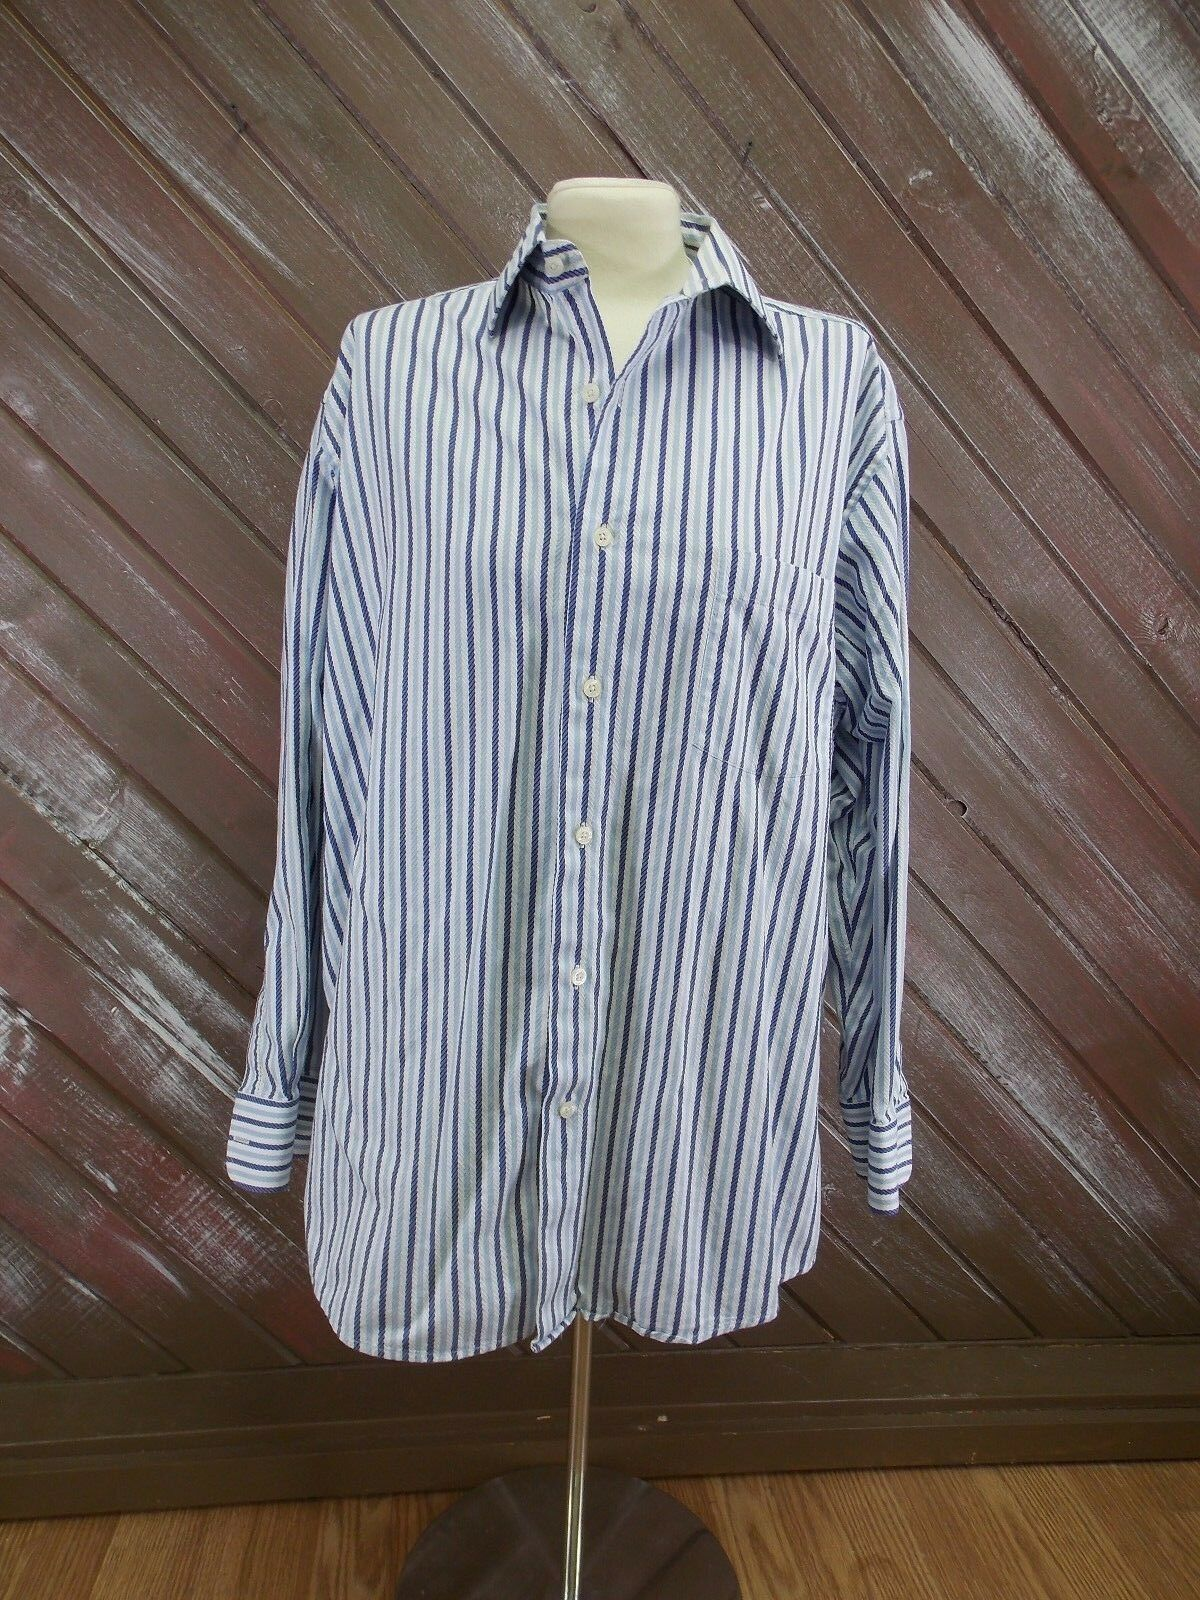 ALEX CANNON Shirt Long Sleeve Full Button Front  Size 16 1 2  Mens Multi-color